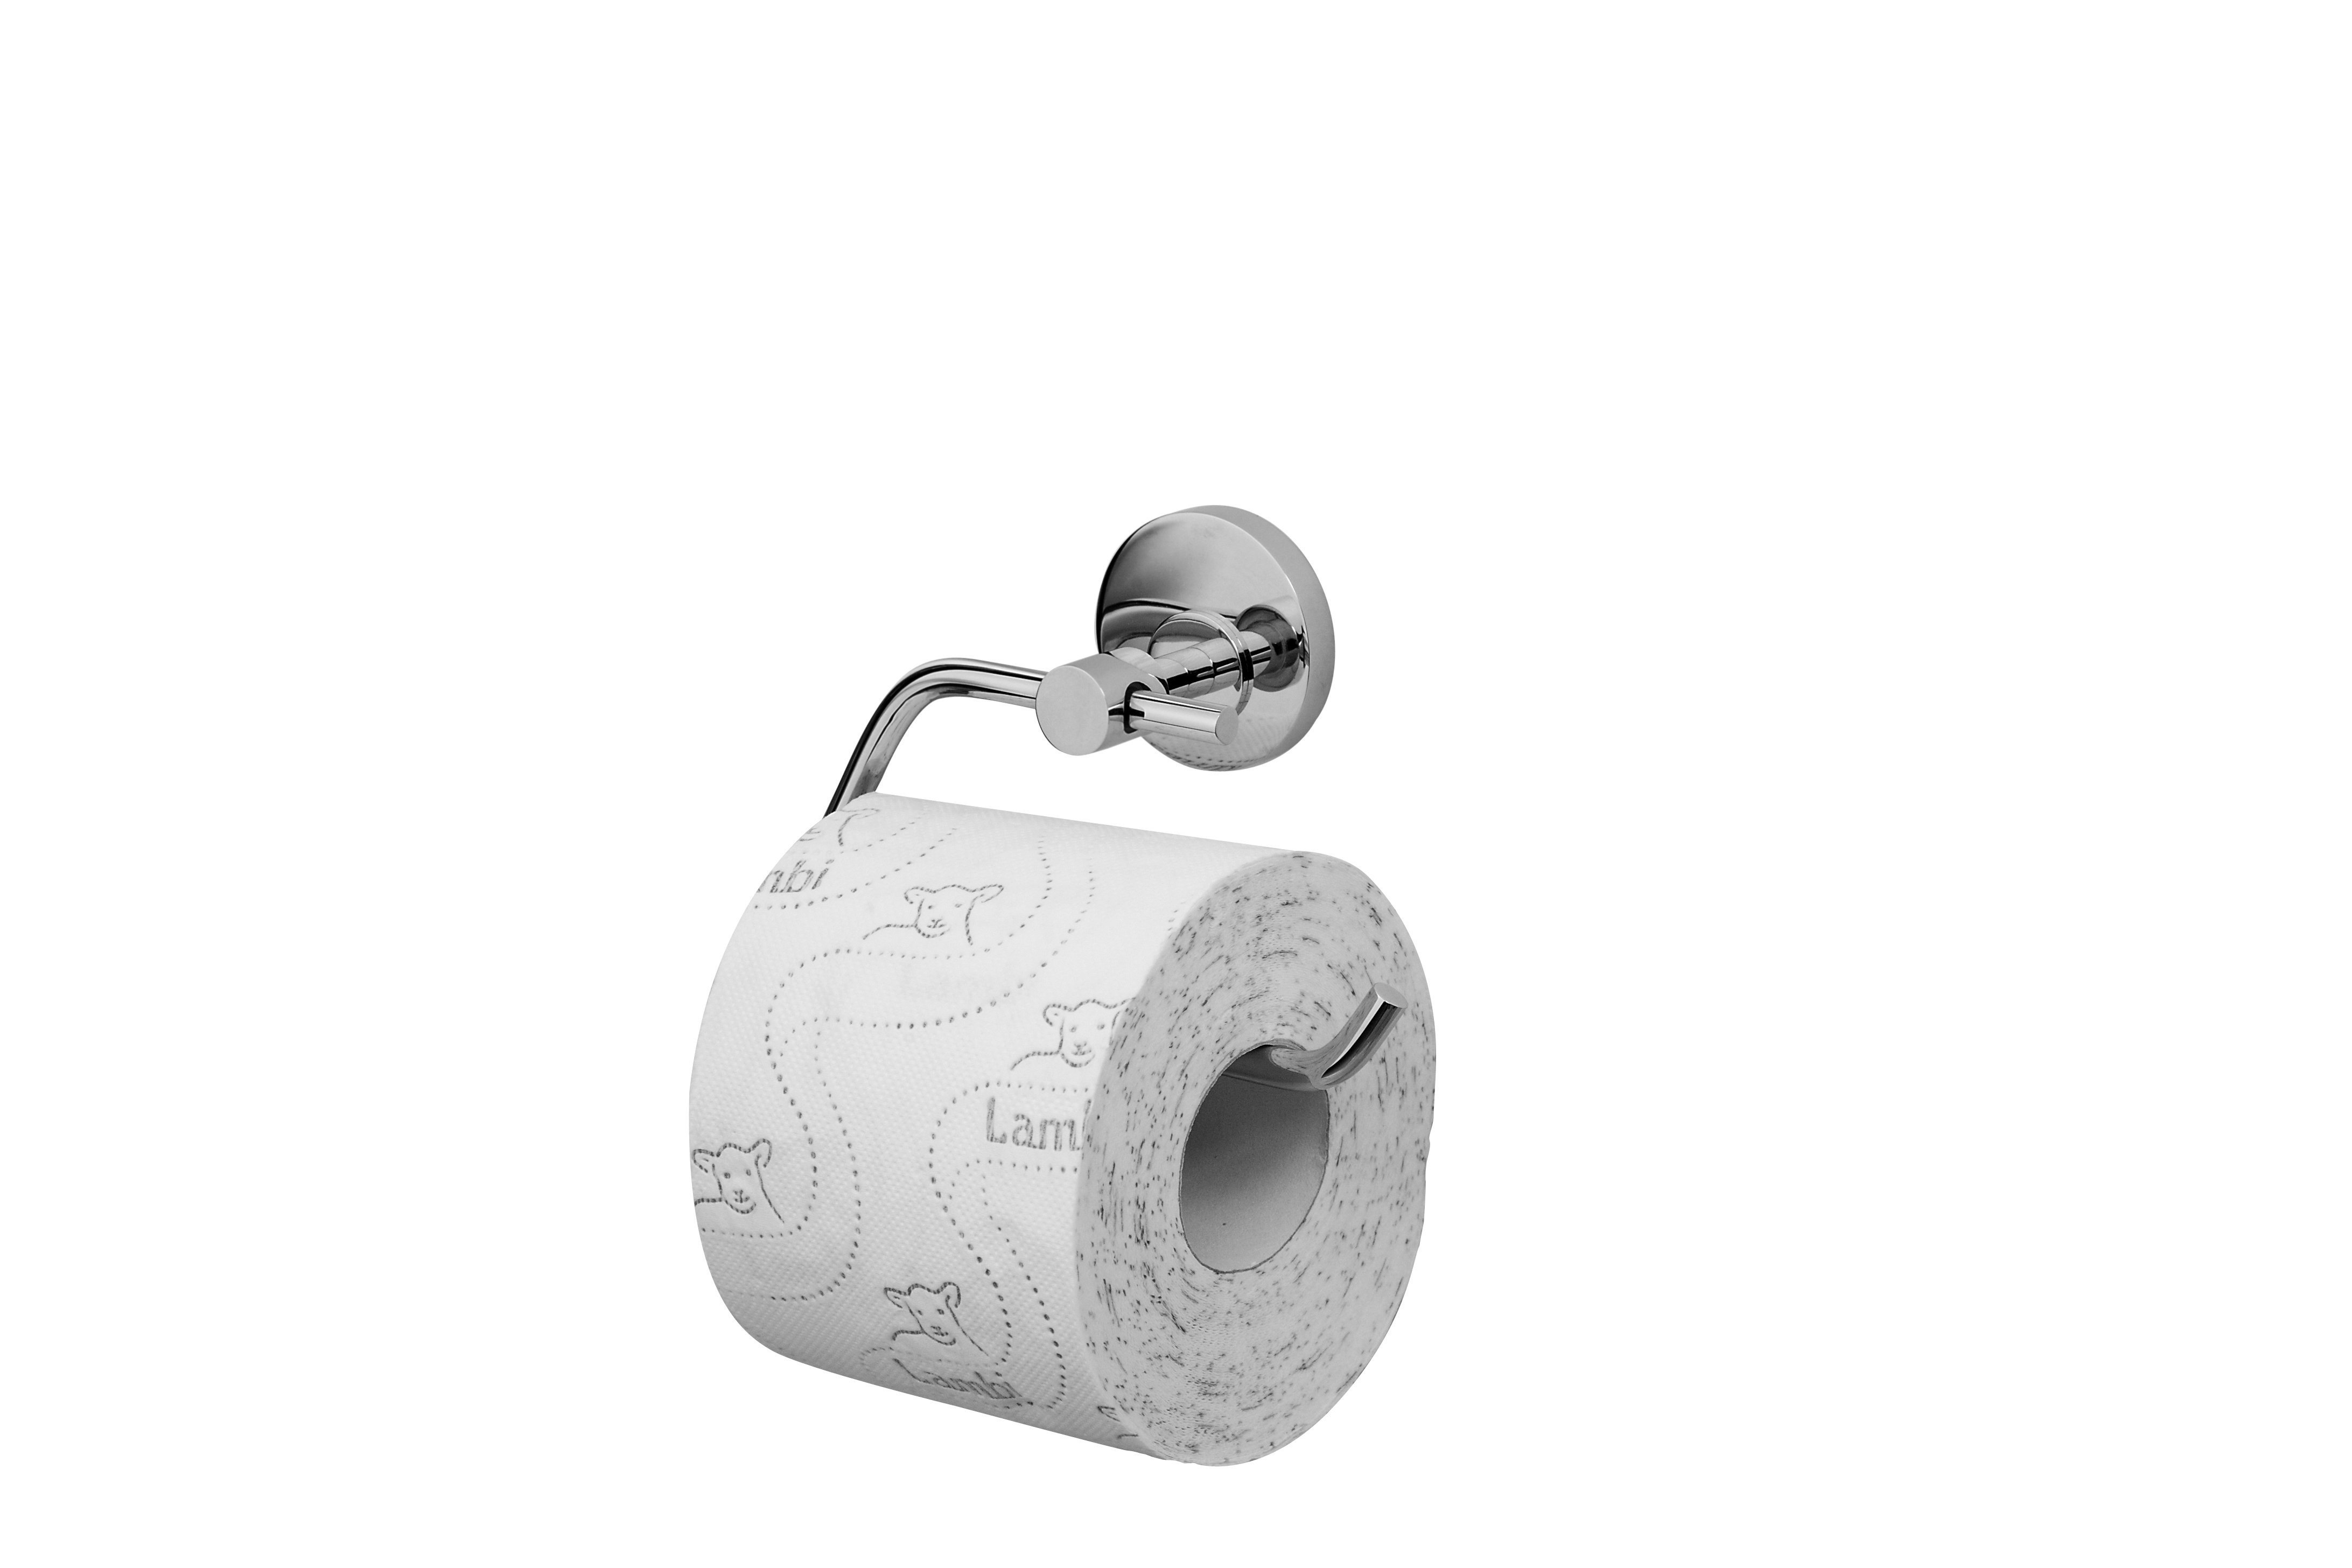 A5534100 Toilet roll holder